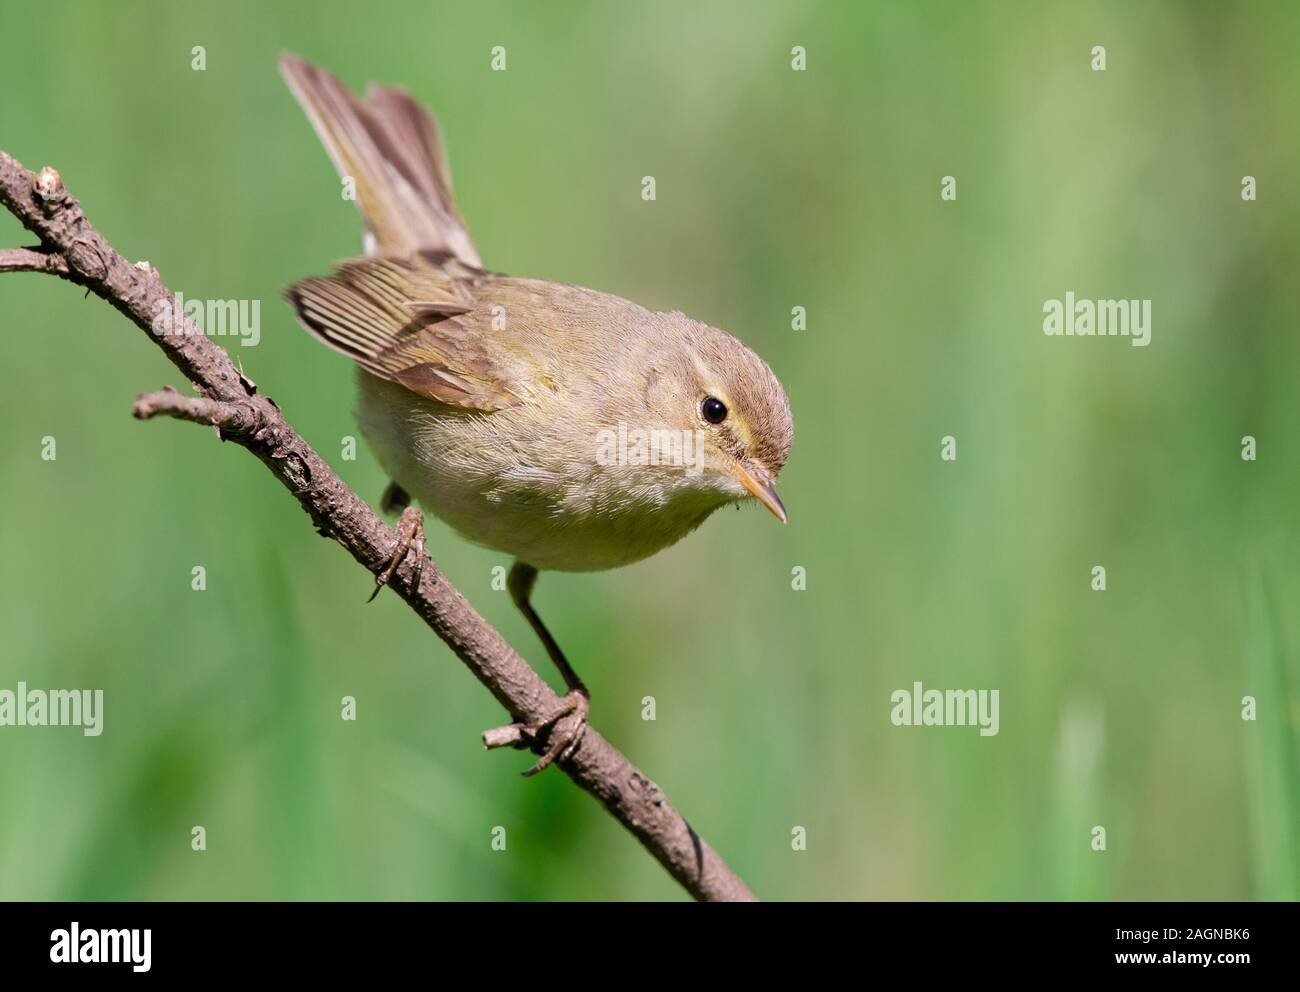 The common chiffchaff, or simply the chiffchaff, (Phylloscopus collybita) is a common and widespread leaf warbler. Stock Photo